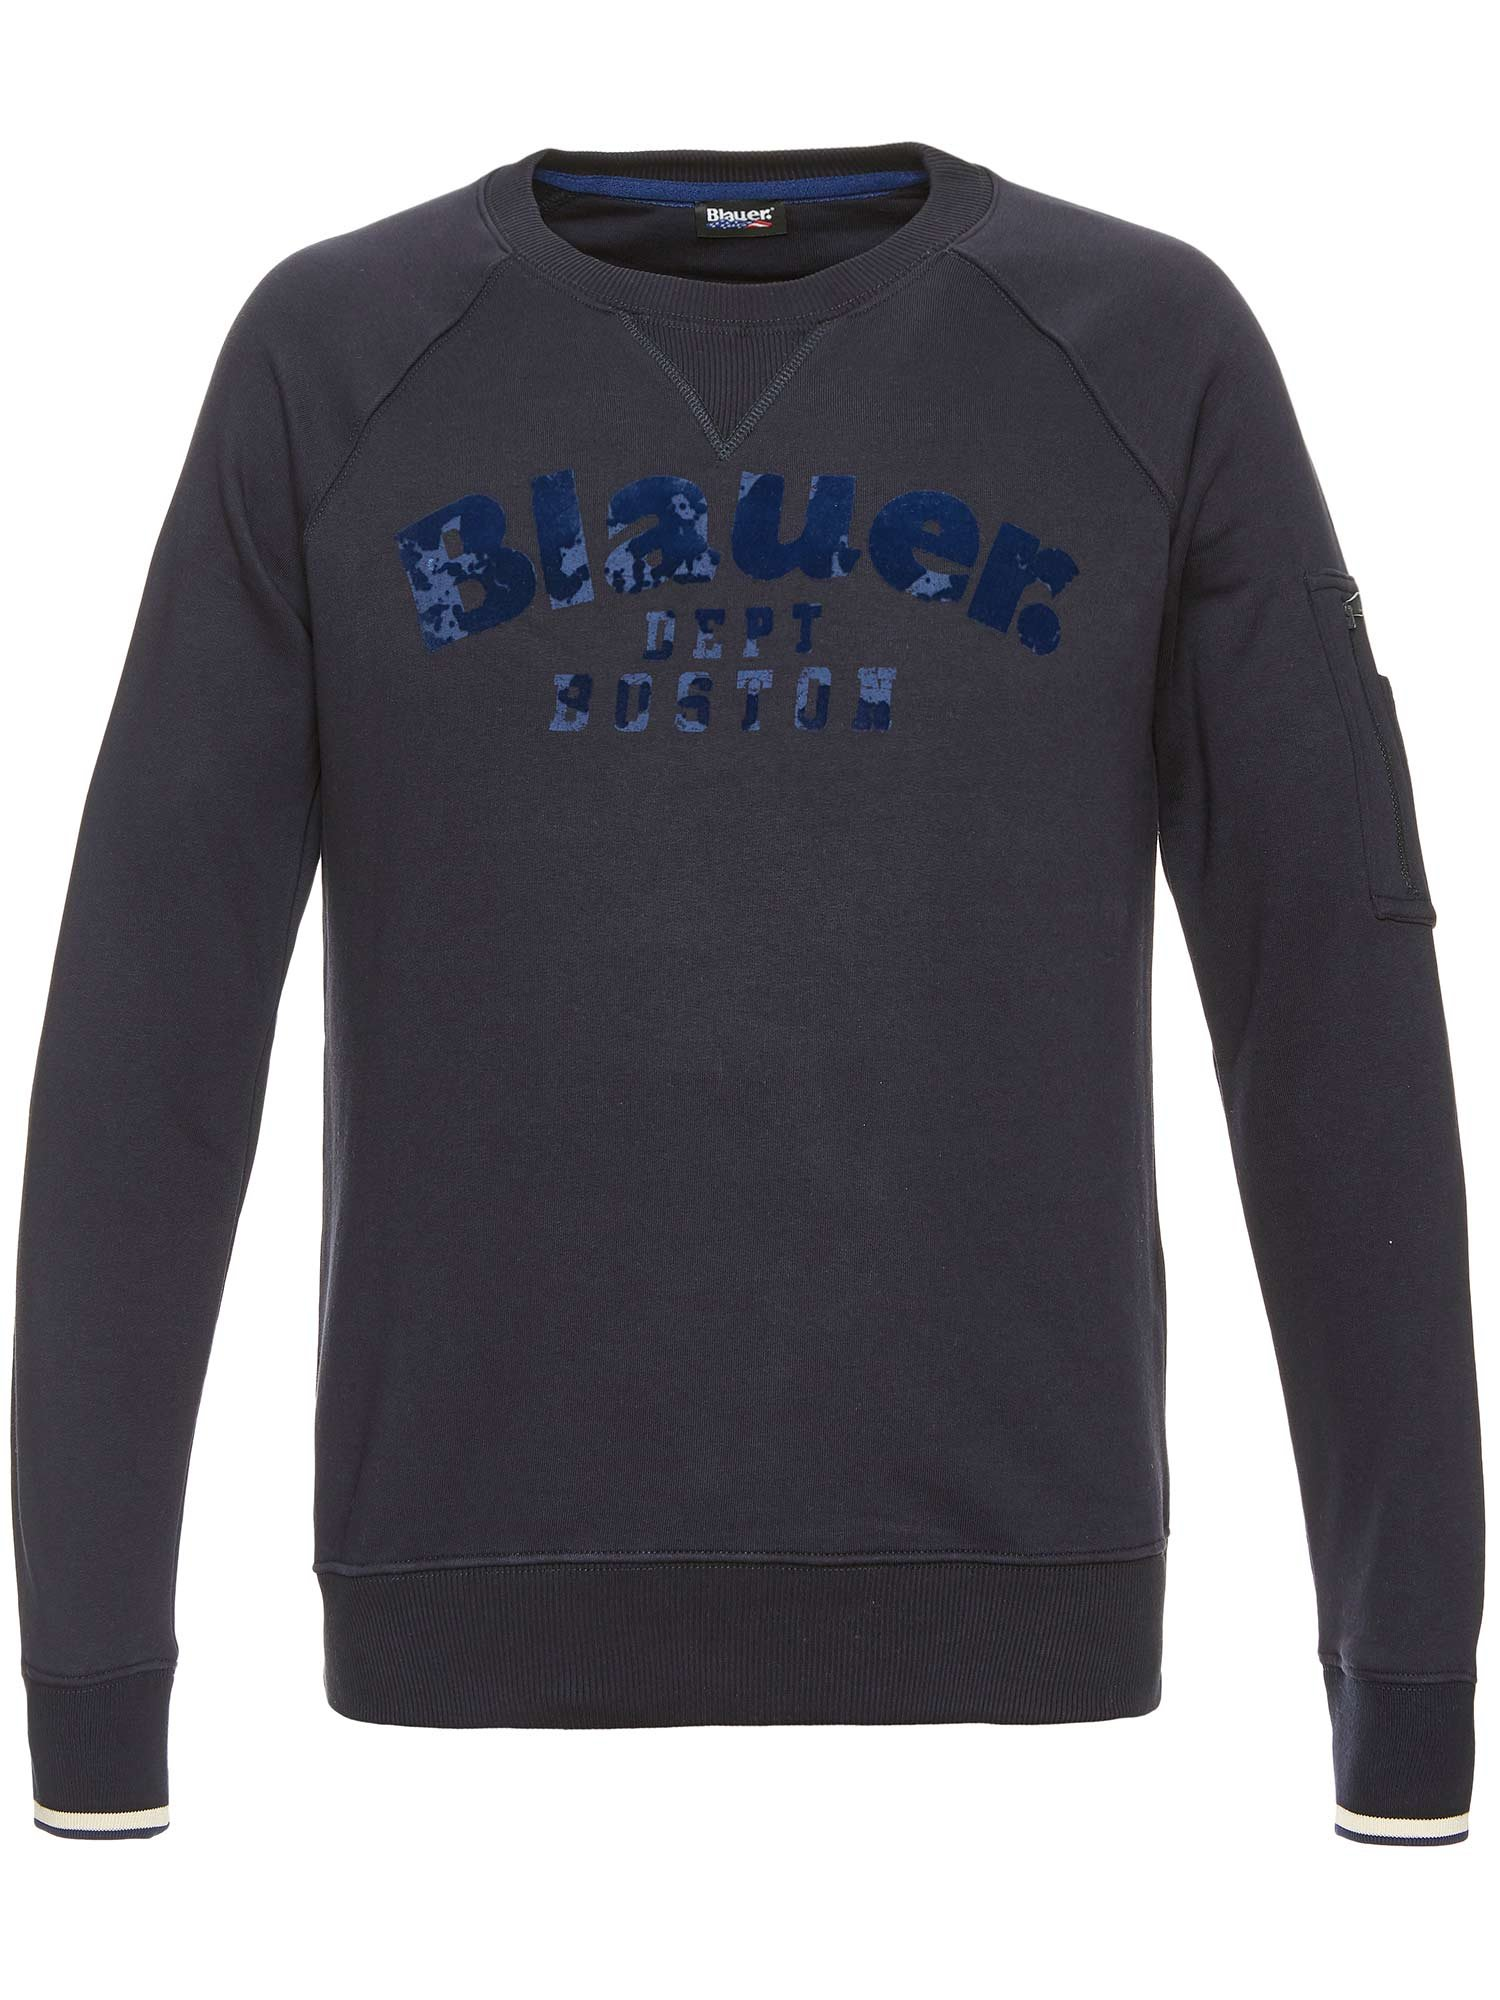 DEPT. BOSTON CREW NECK SWEATSHIRT - Blauer